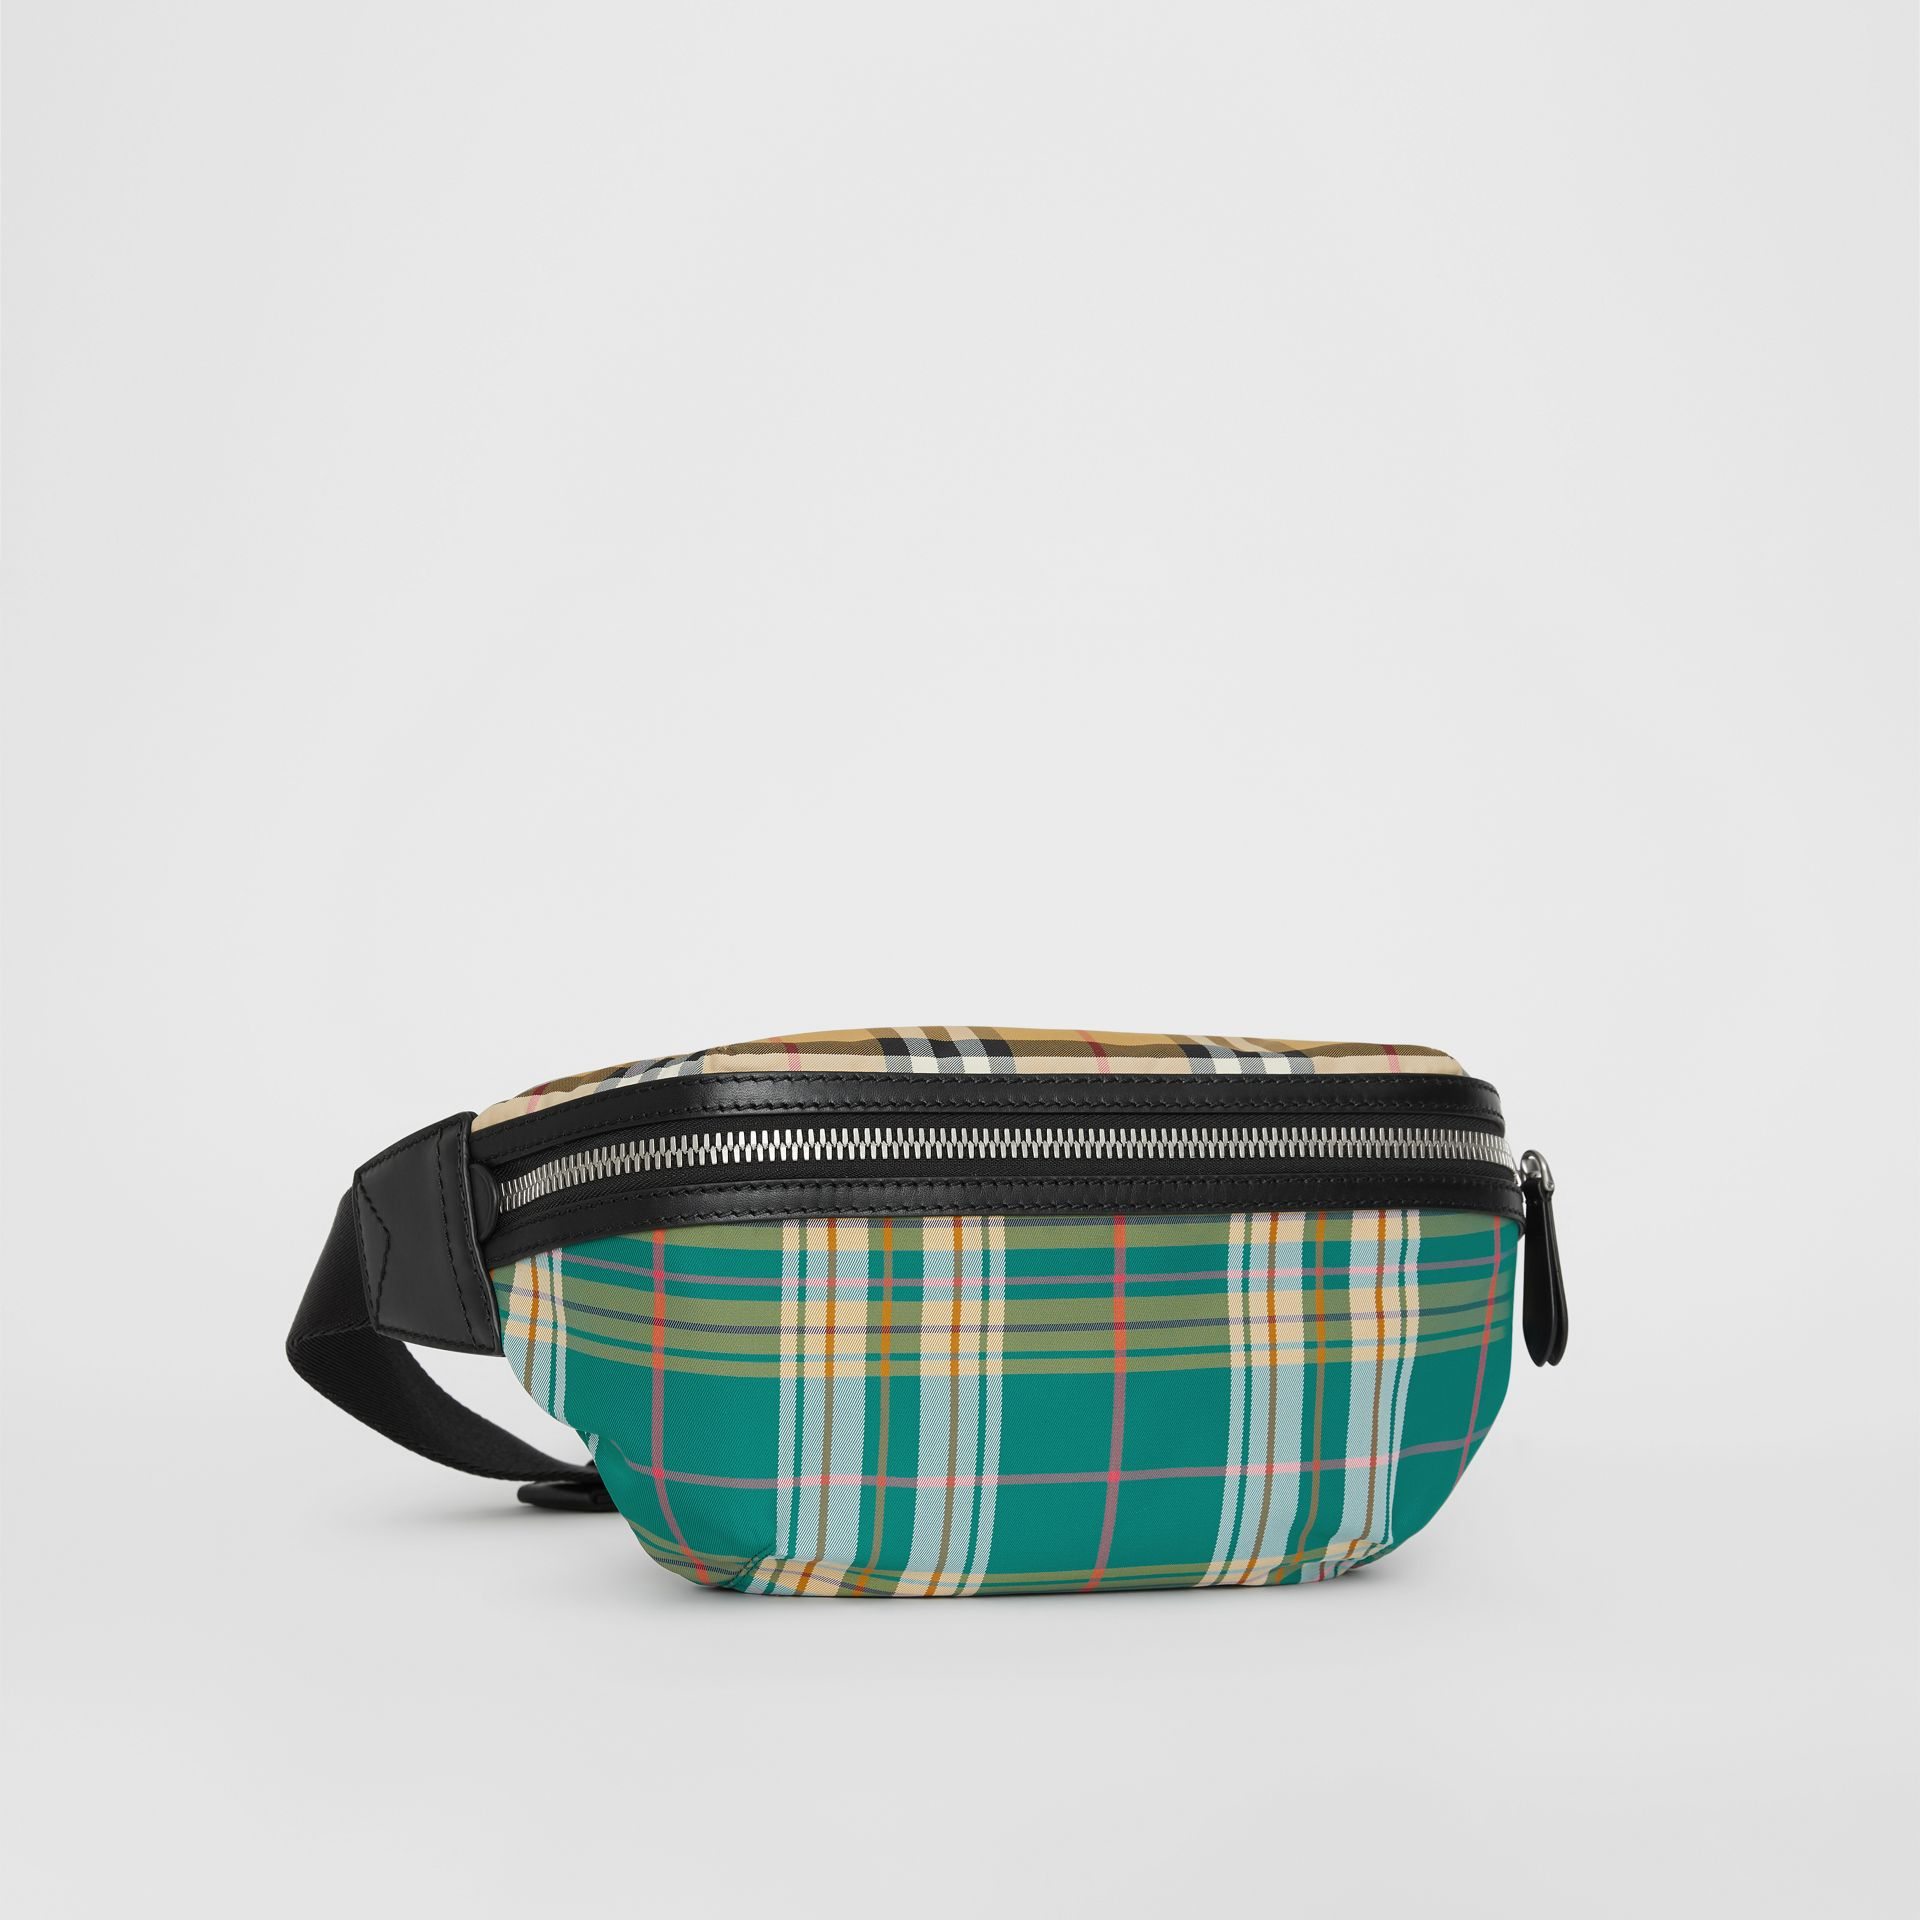 Medium Vintage Check and Tartan Bum Bag in Pine Green | Burberry - gallery image 4